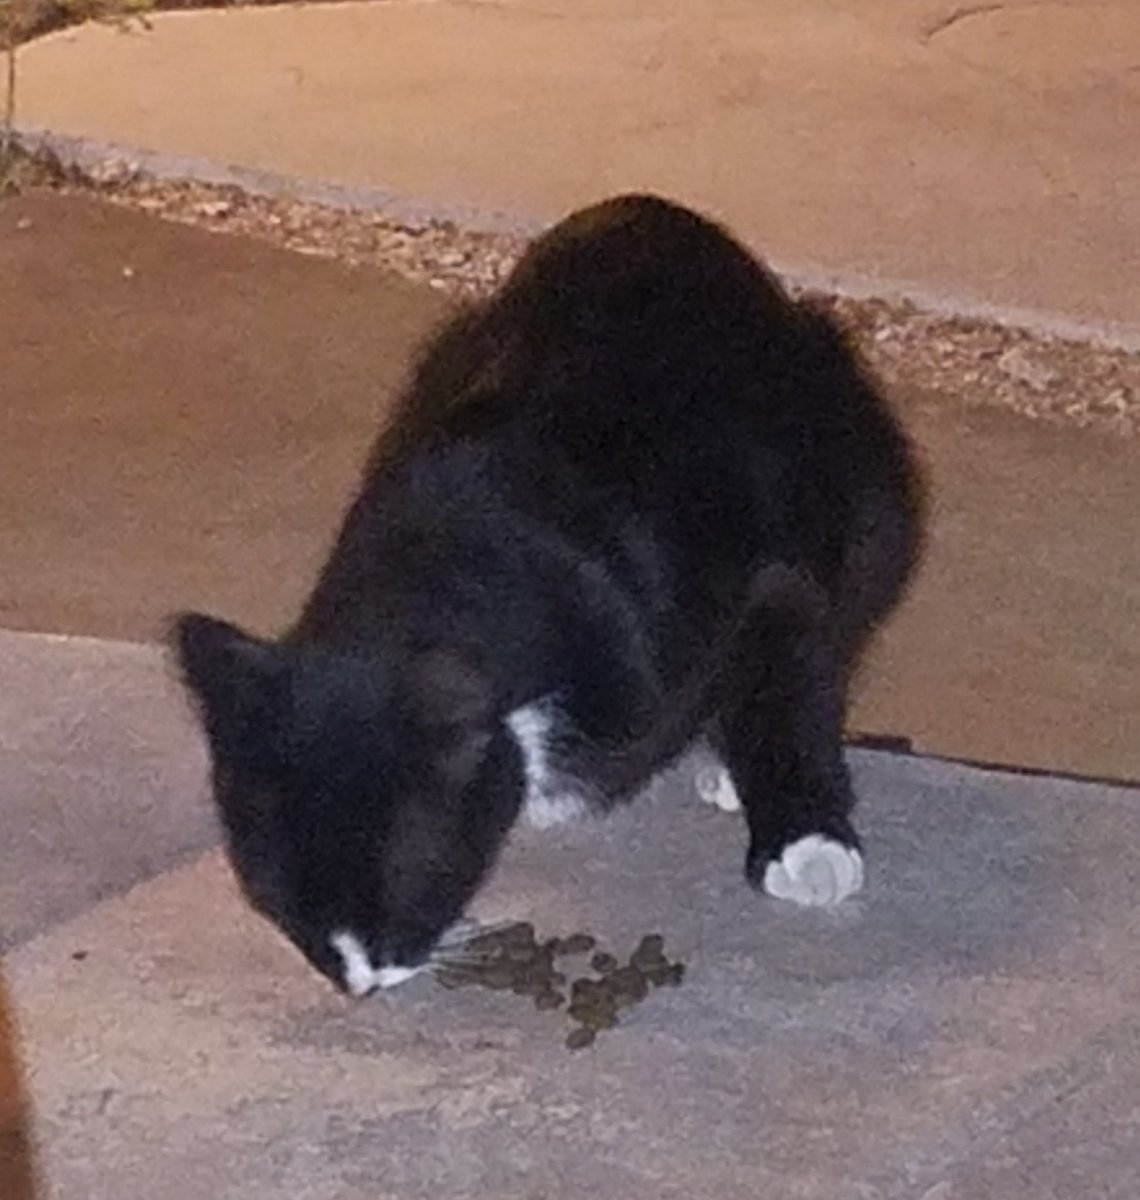 This is like the 4th time Slinky has shown up to eat today. Mom doesn't even feed me that much. She says I should be happy with my full bowl. Whatevs, Mom. #TalkToThePaw  #CatsofTwitter #Cats #CatLife #CatChronicles pic.twitter.com/GADQVeHc5m  by The Naughty Pussycat